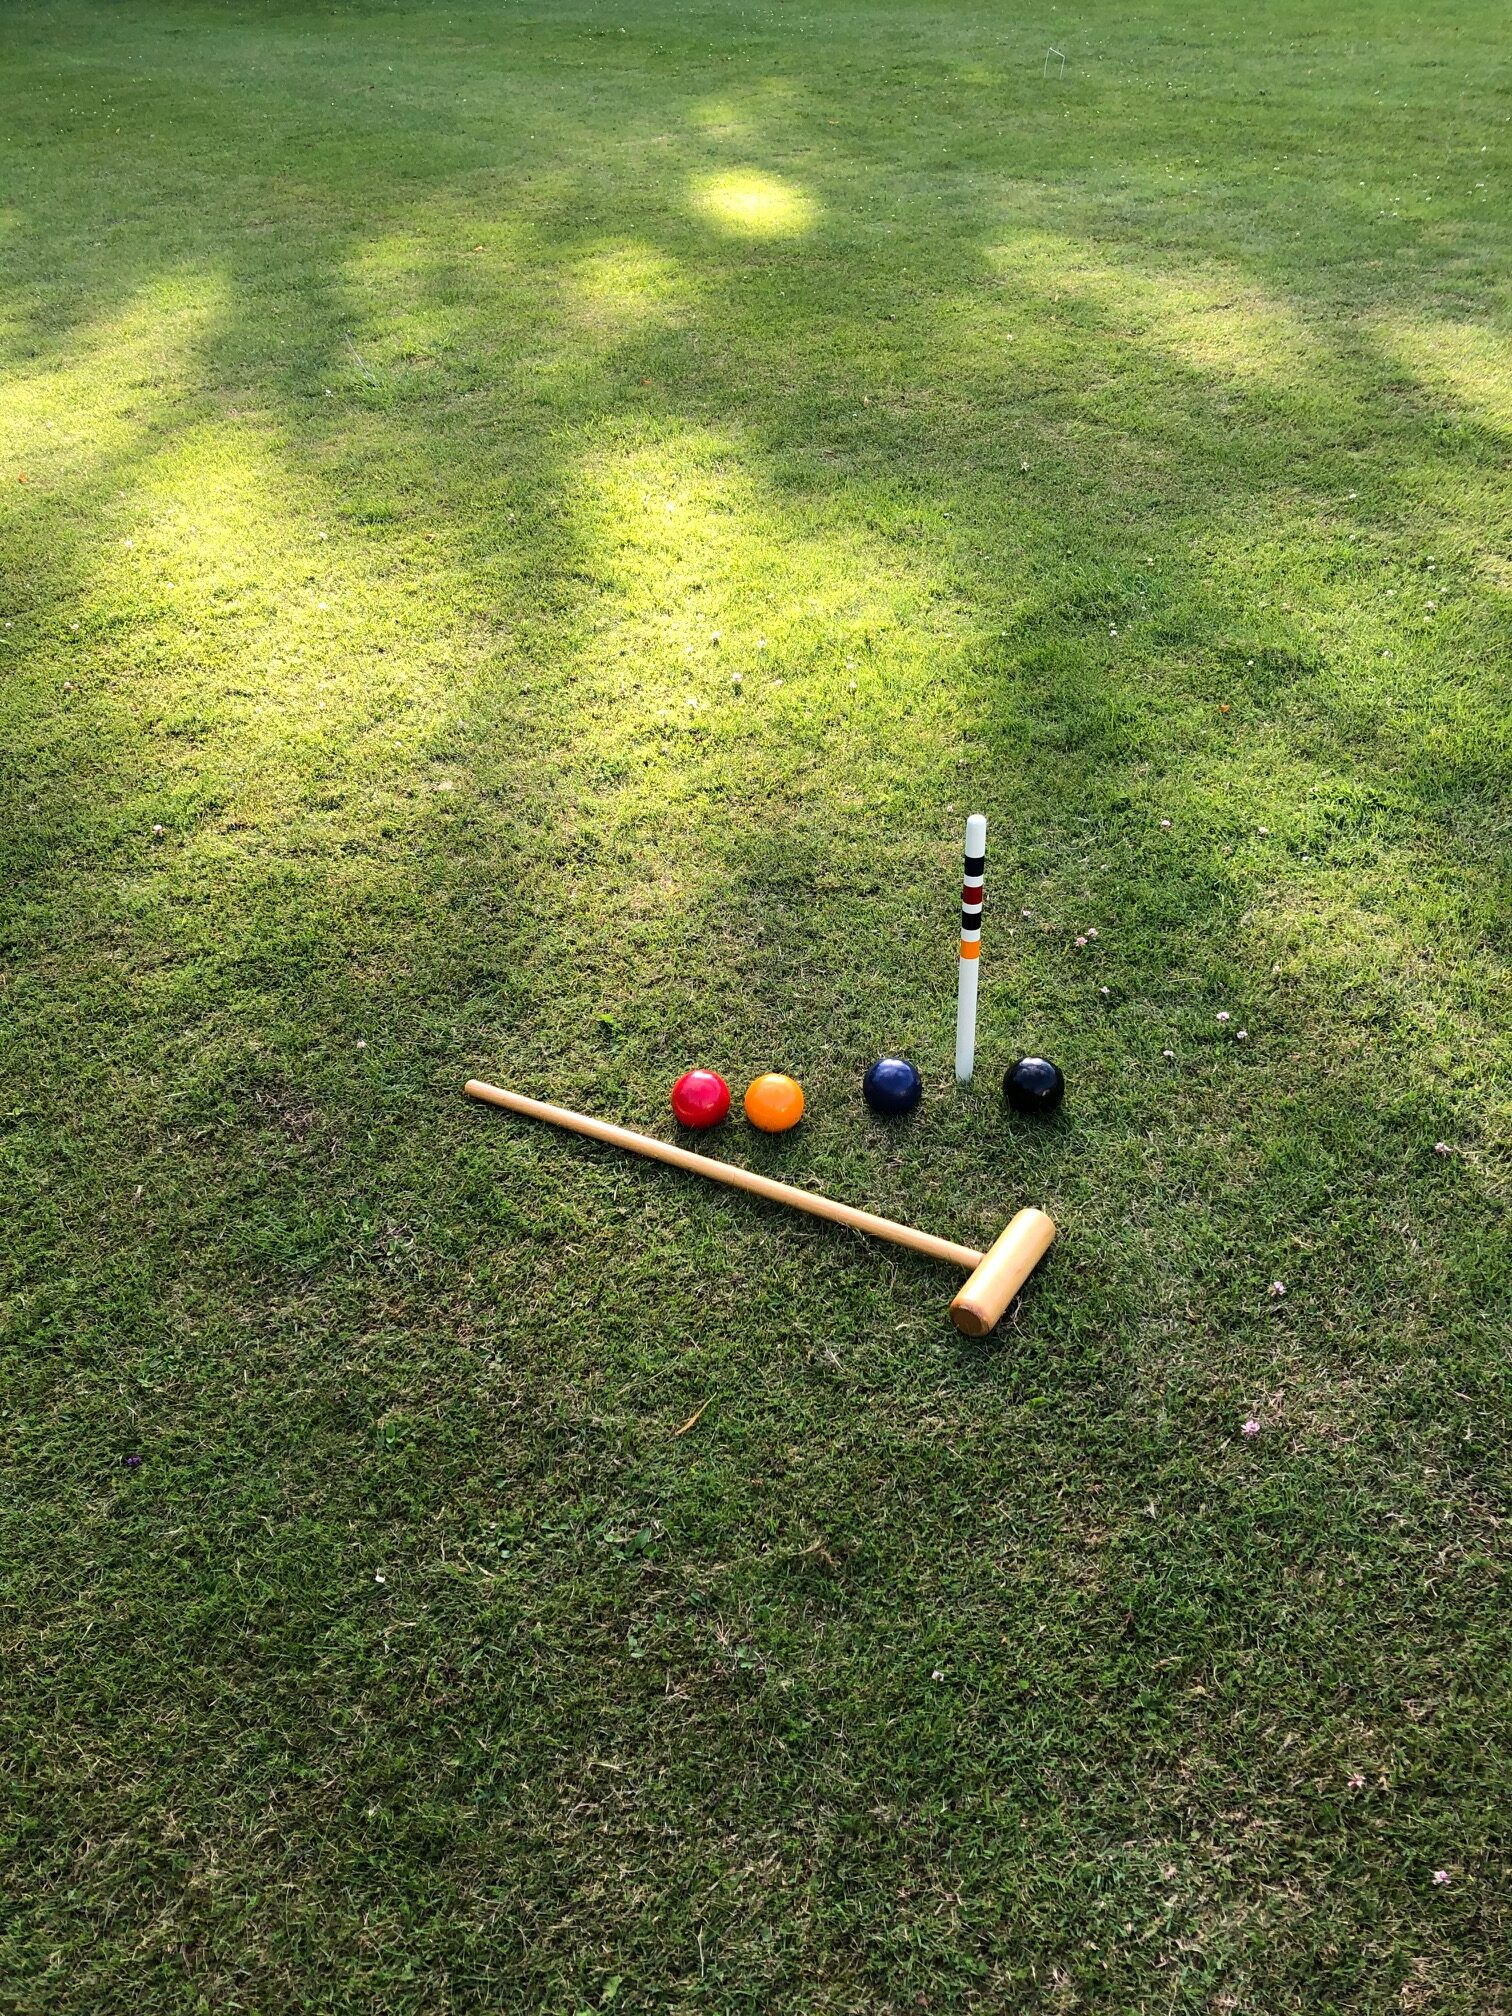 Croquet, anyone? Games and outdoor activity.